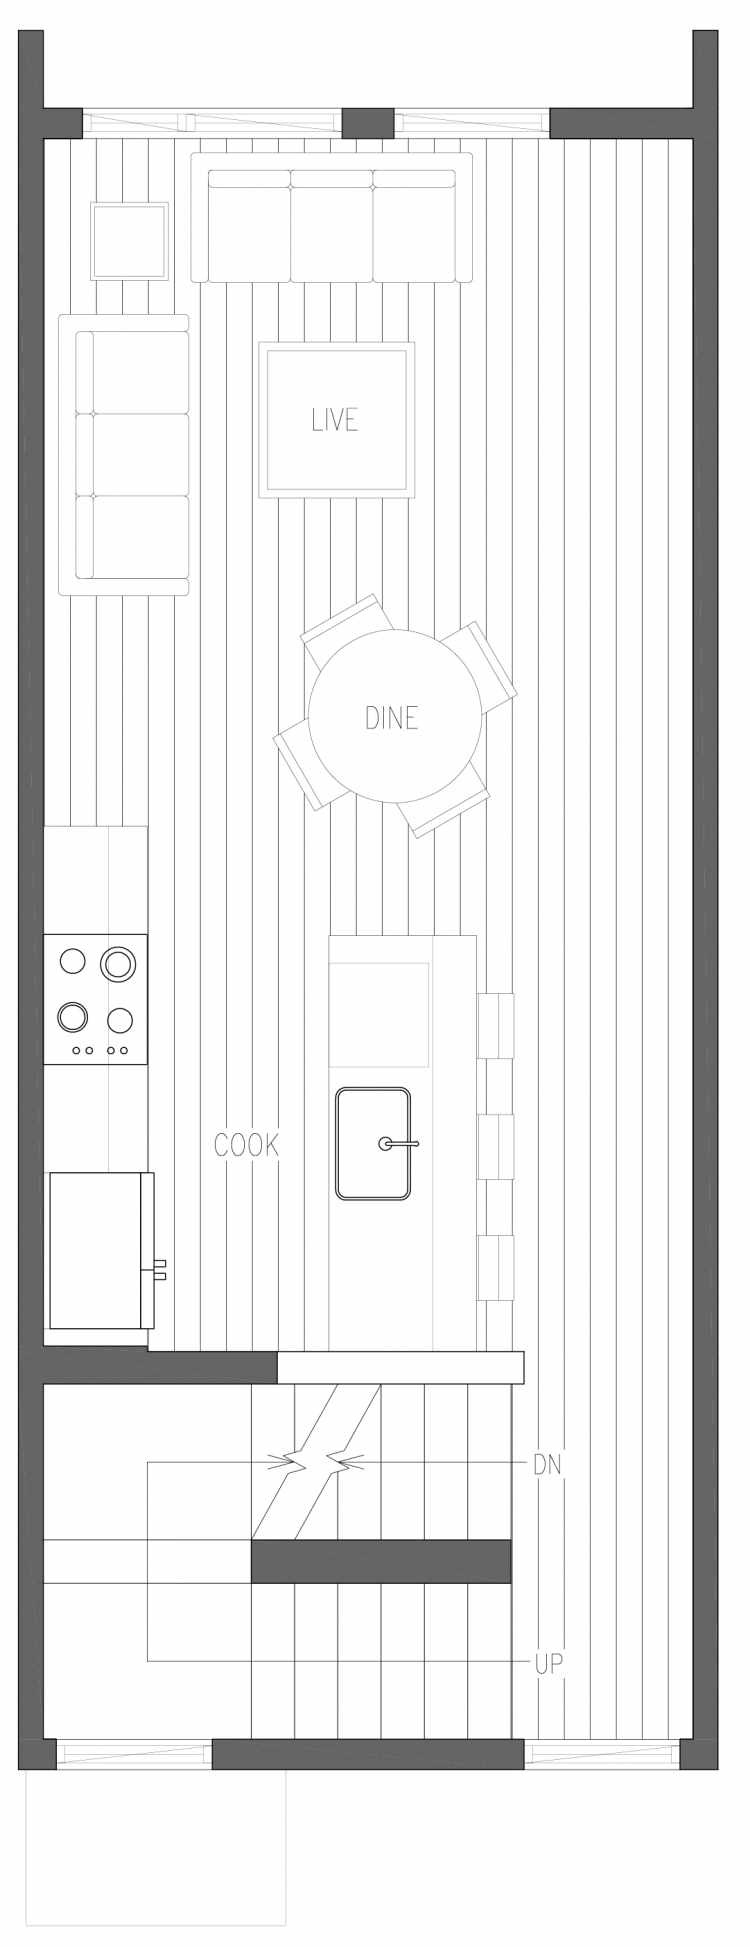 Second Floor Plan of 6413 14th Ave NW, One of the Oleana Townhomes in Ballard by Isola Homes